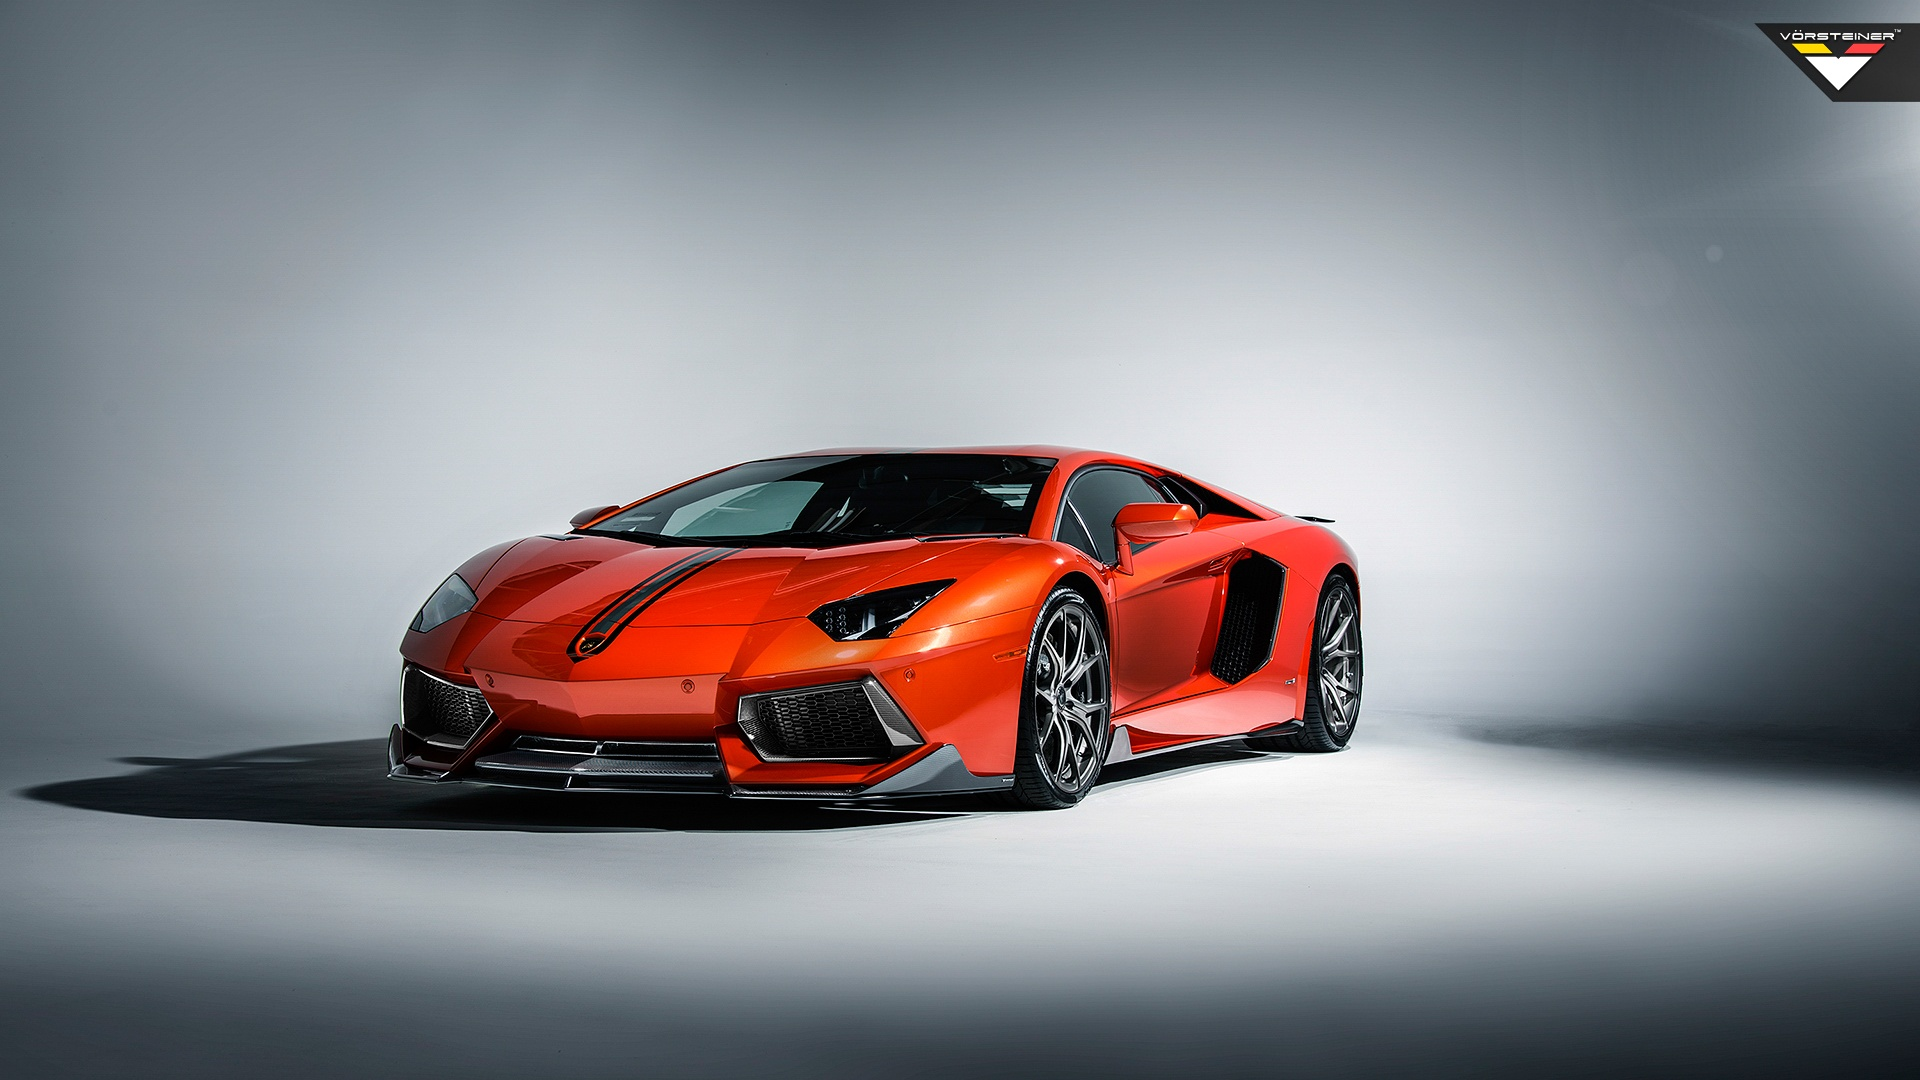 Exotic Car Wallpaper For Computer: 25+ Exotic & Awesome Car Wallpapers [HD Edition]